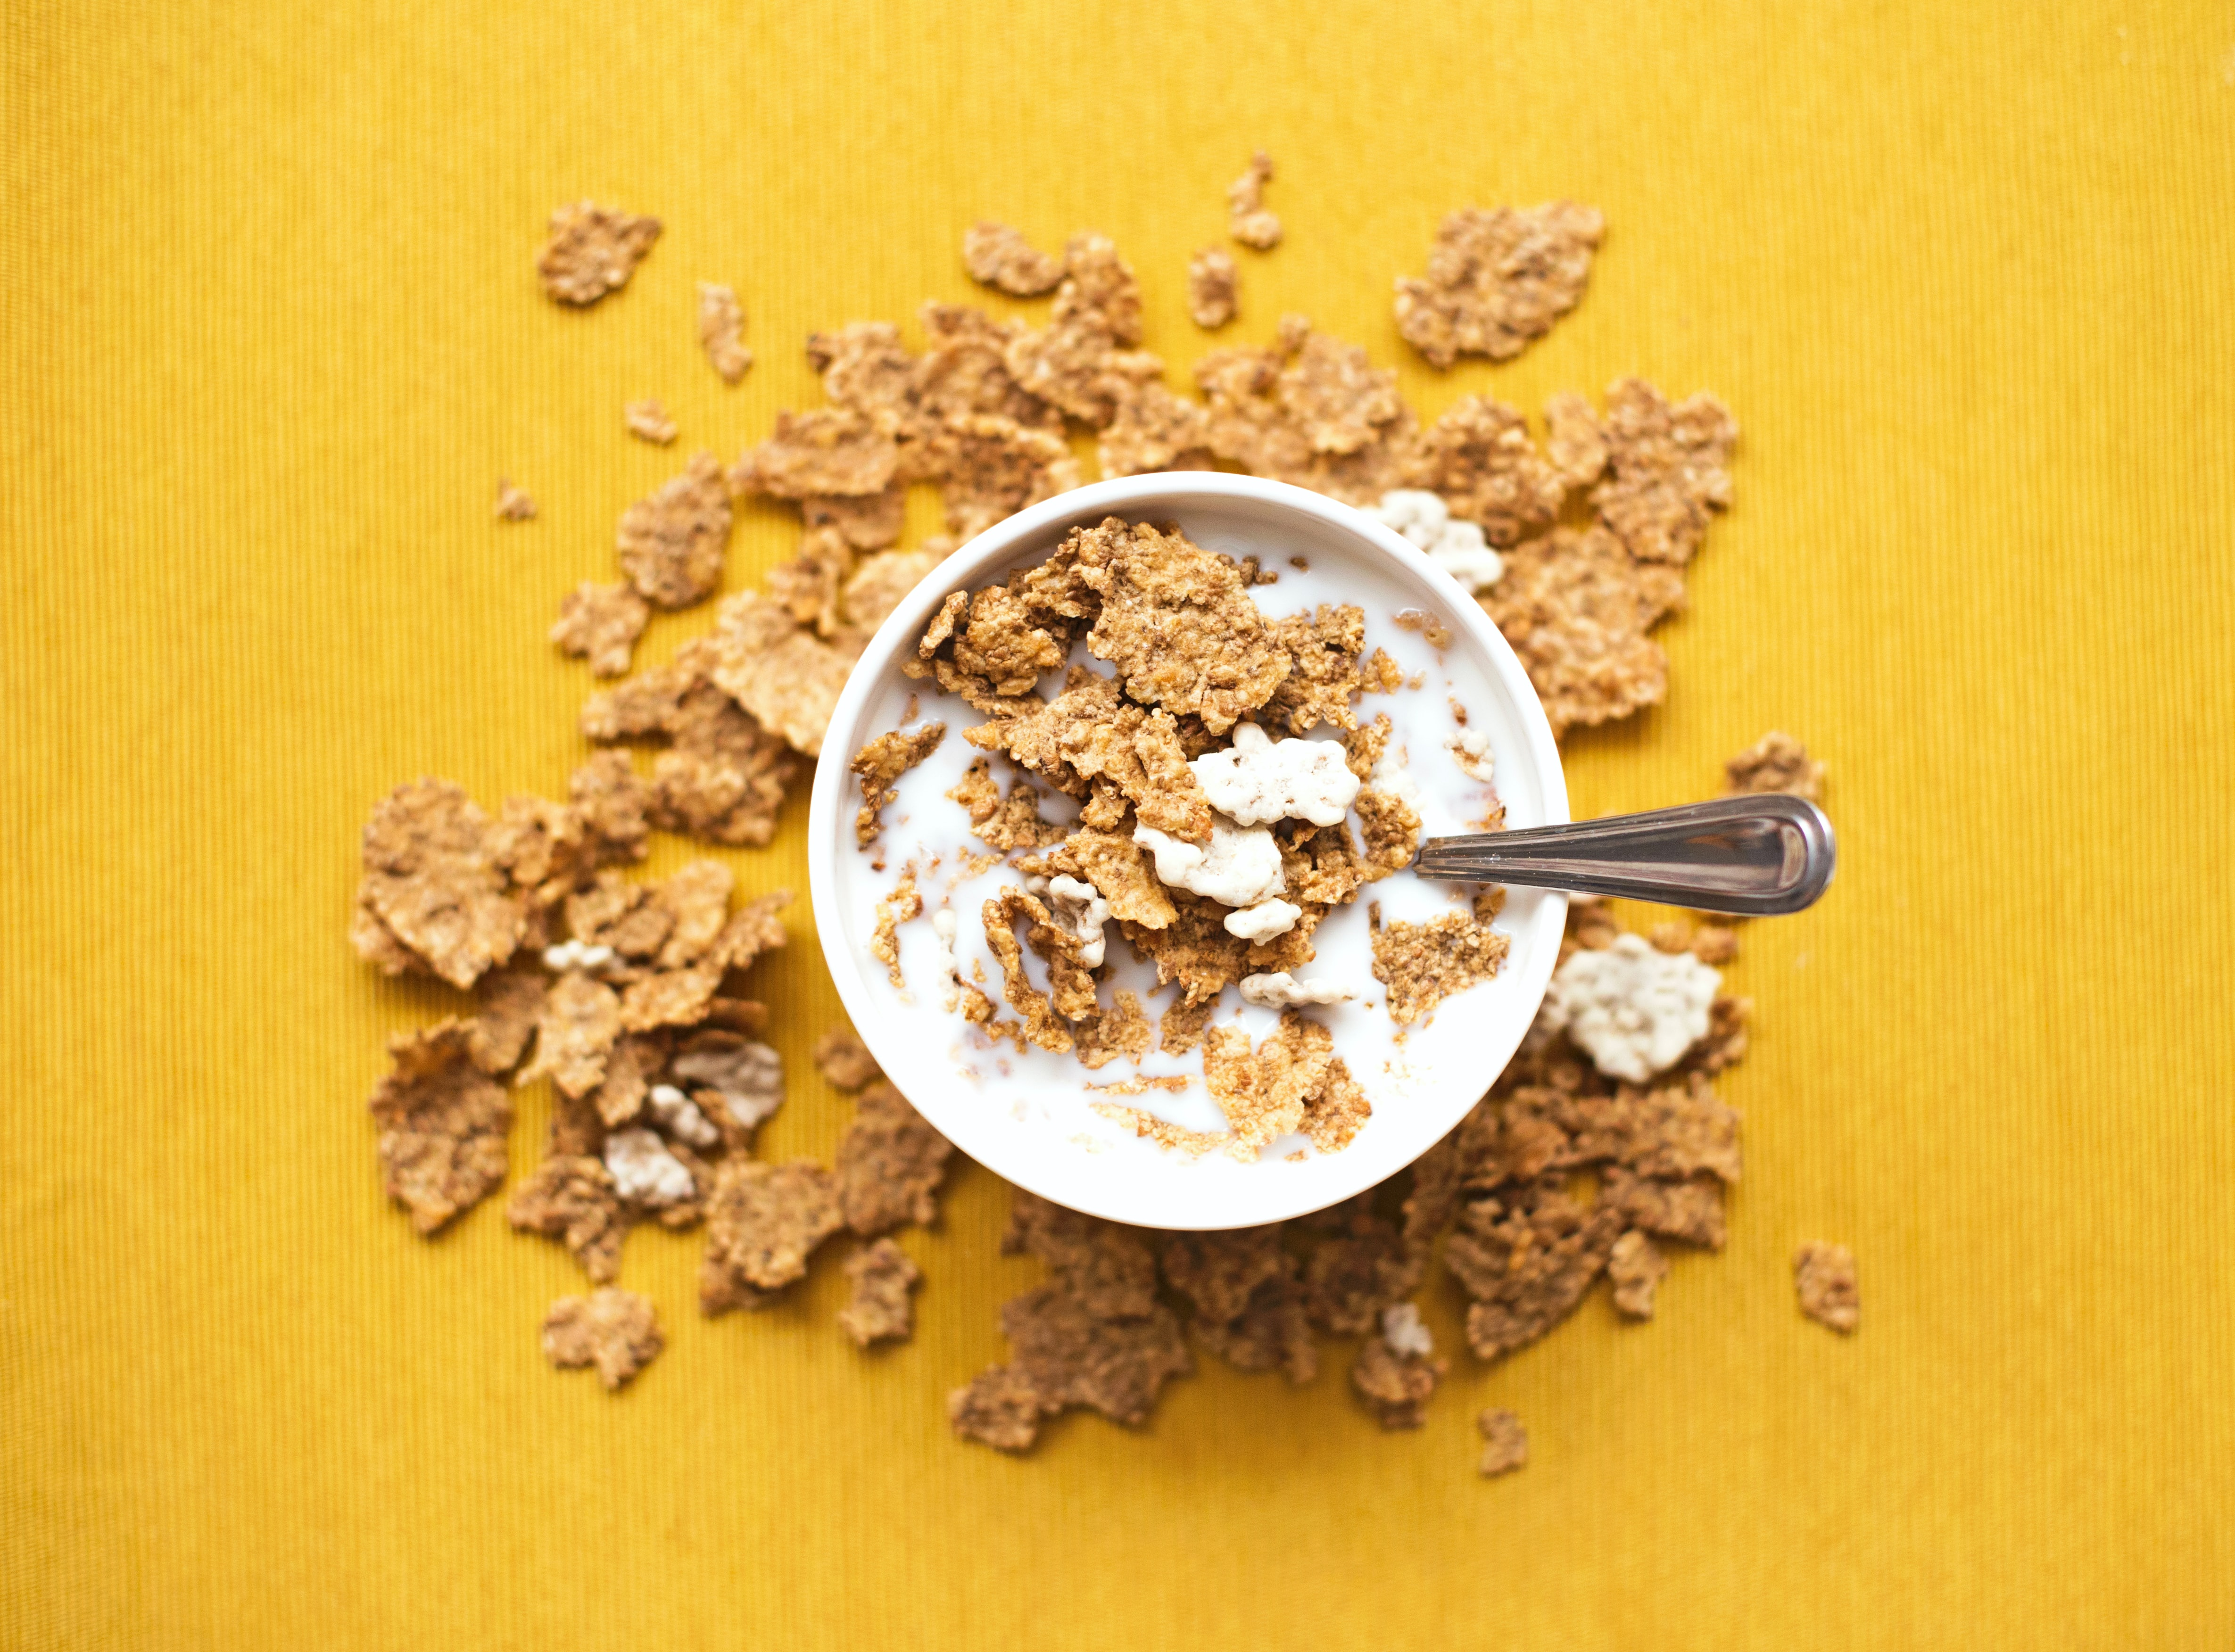 Cereal is not soup and why all your silly opinions matter